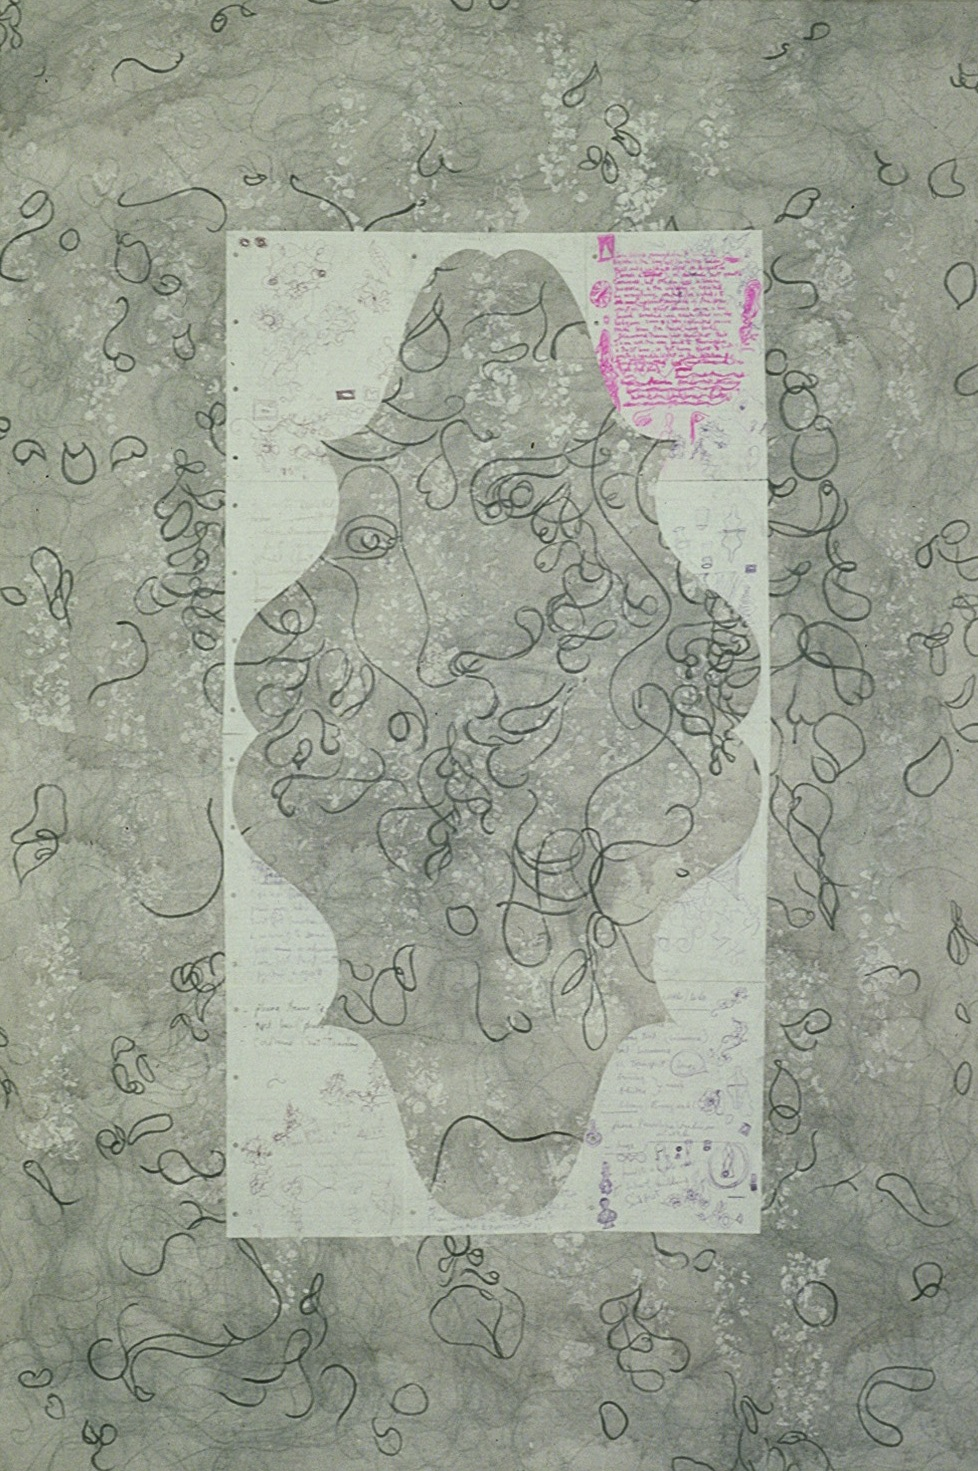 Grey With Face 1999 - 178 x 141cm - gesso, graphite, acrylic, paper on canvas.